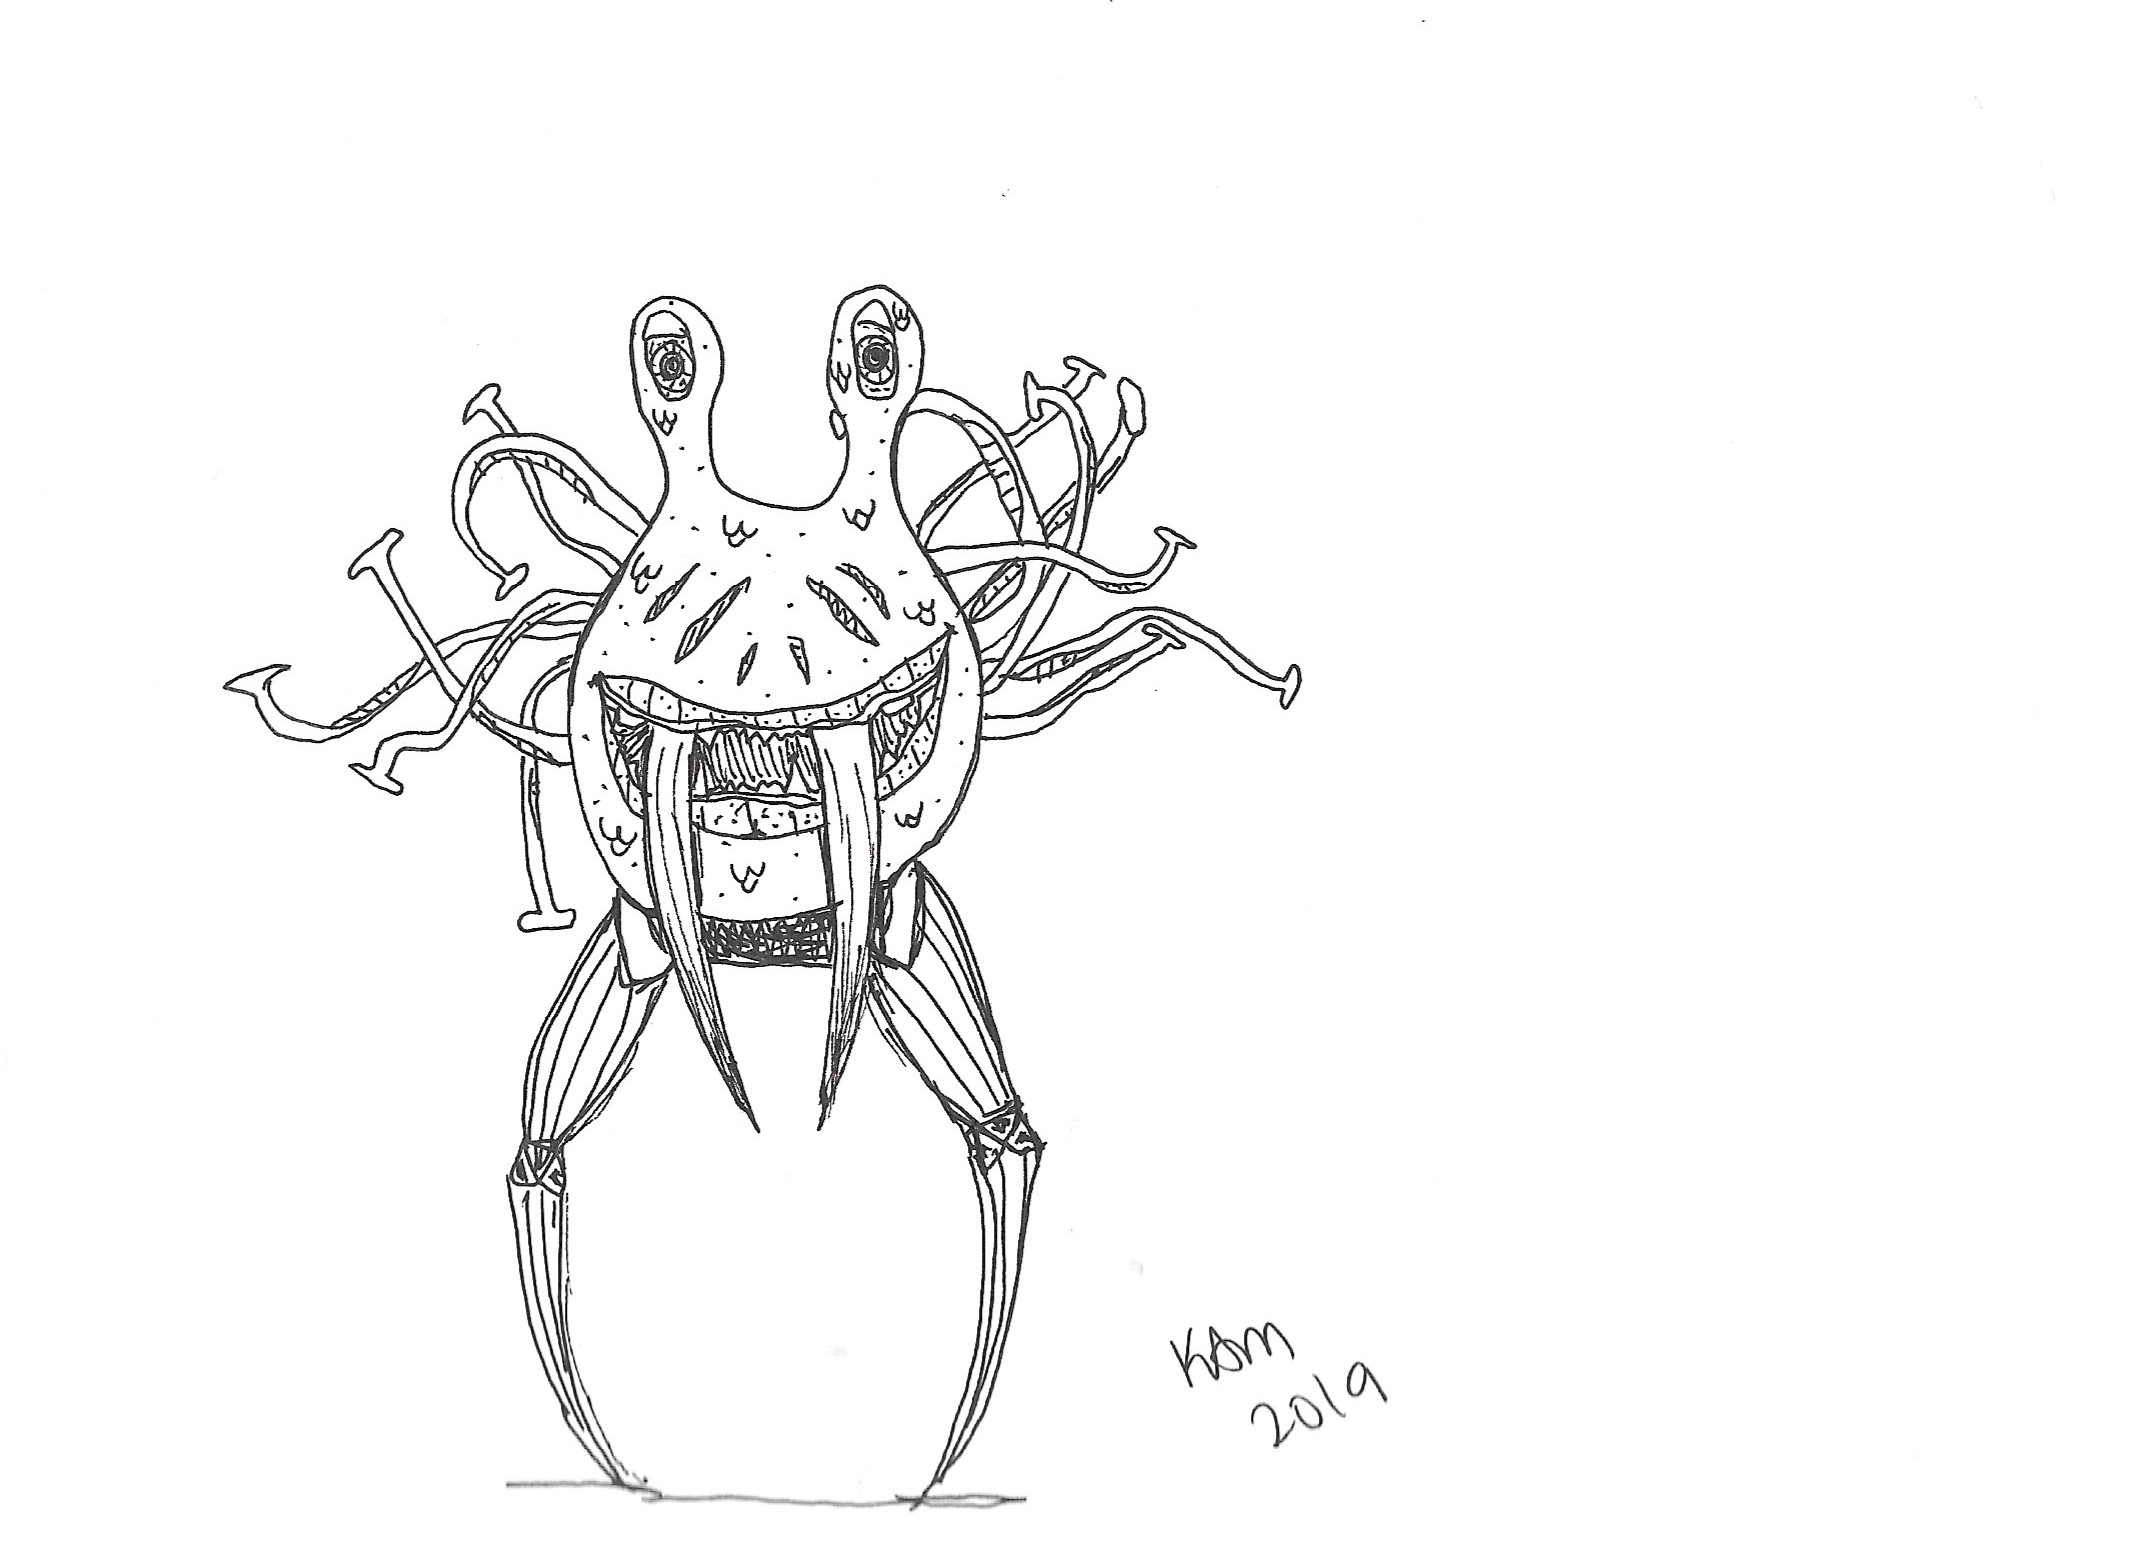 monster creature with two wide eyes looking at the viewer. It has two segmented legs and two large fangs coming out of its mouth, which is smiling. It has thin tentacles sprawled out from the back of its large, blobby head.